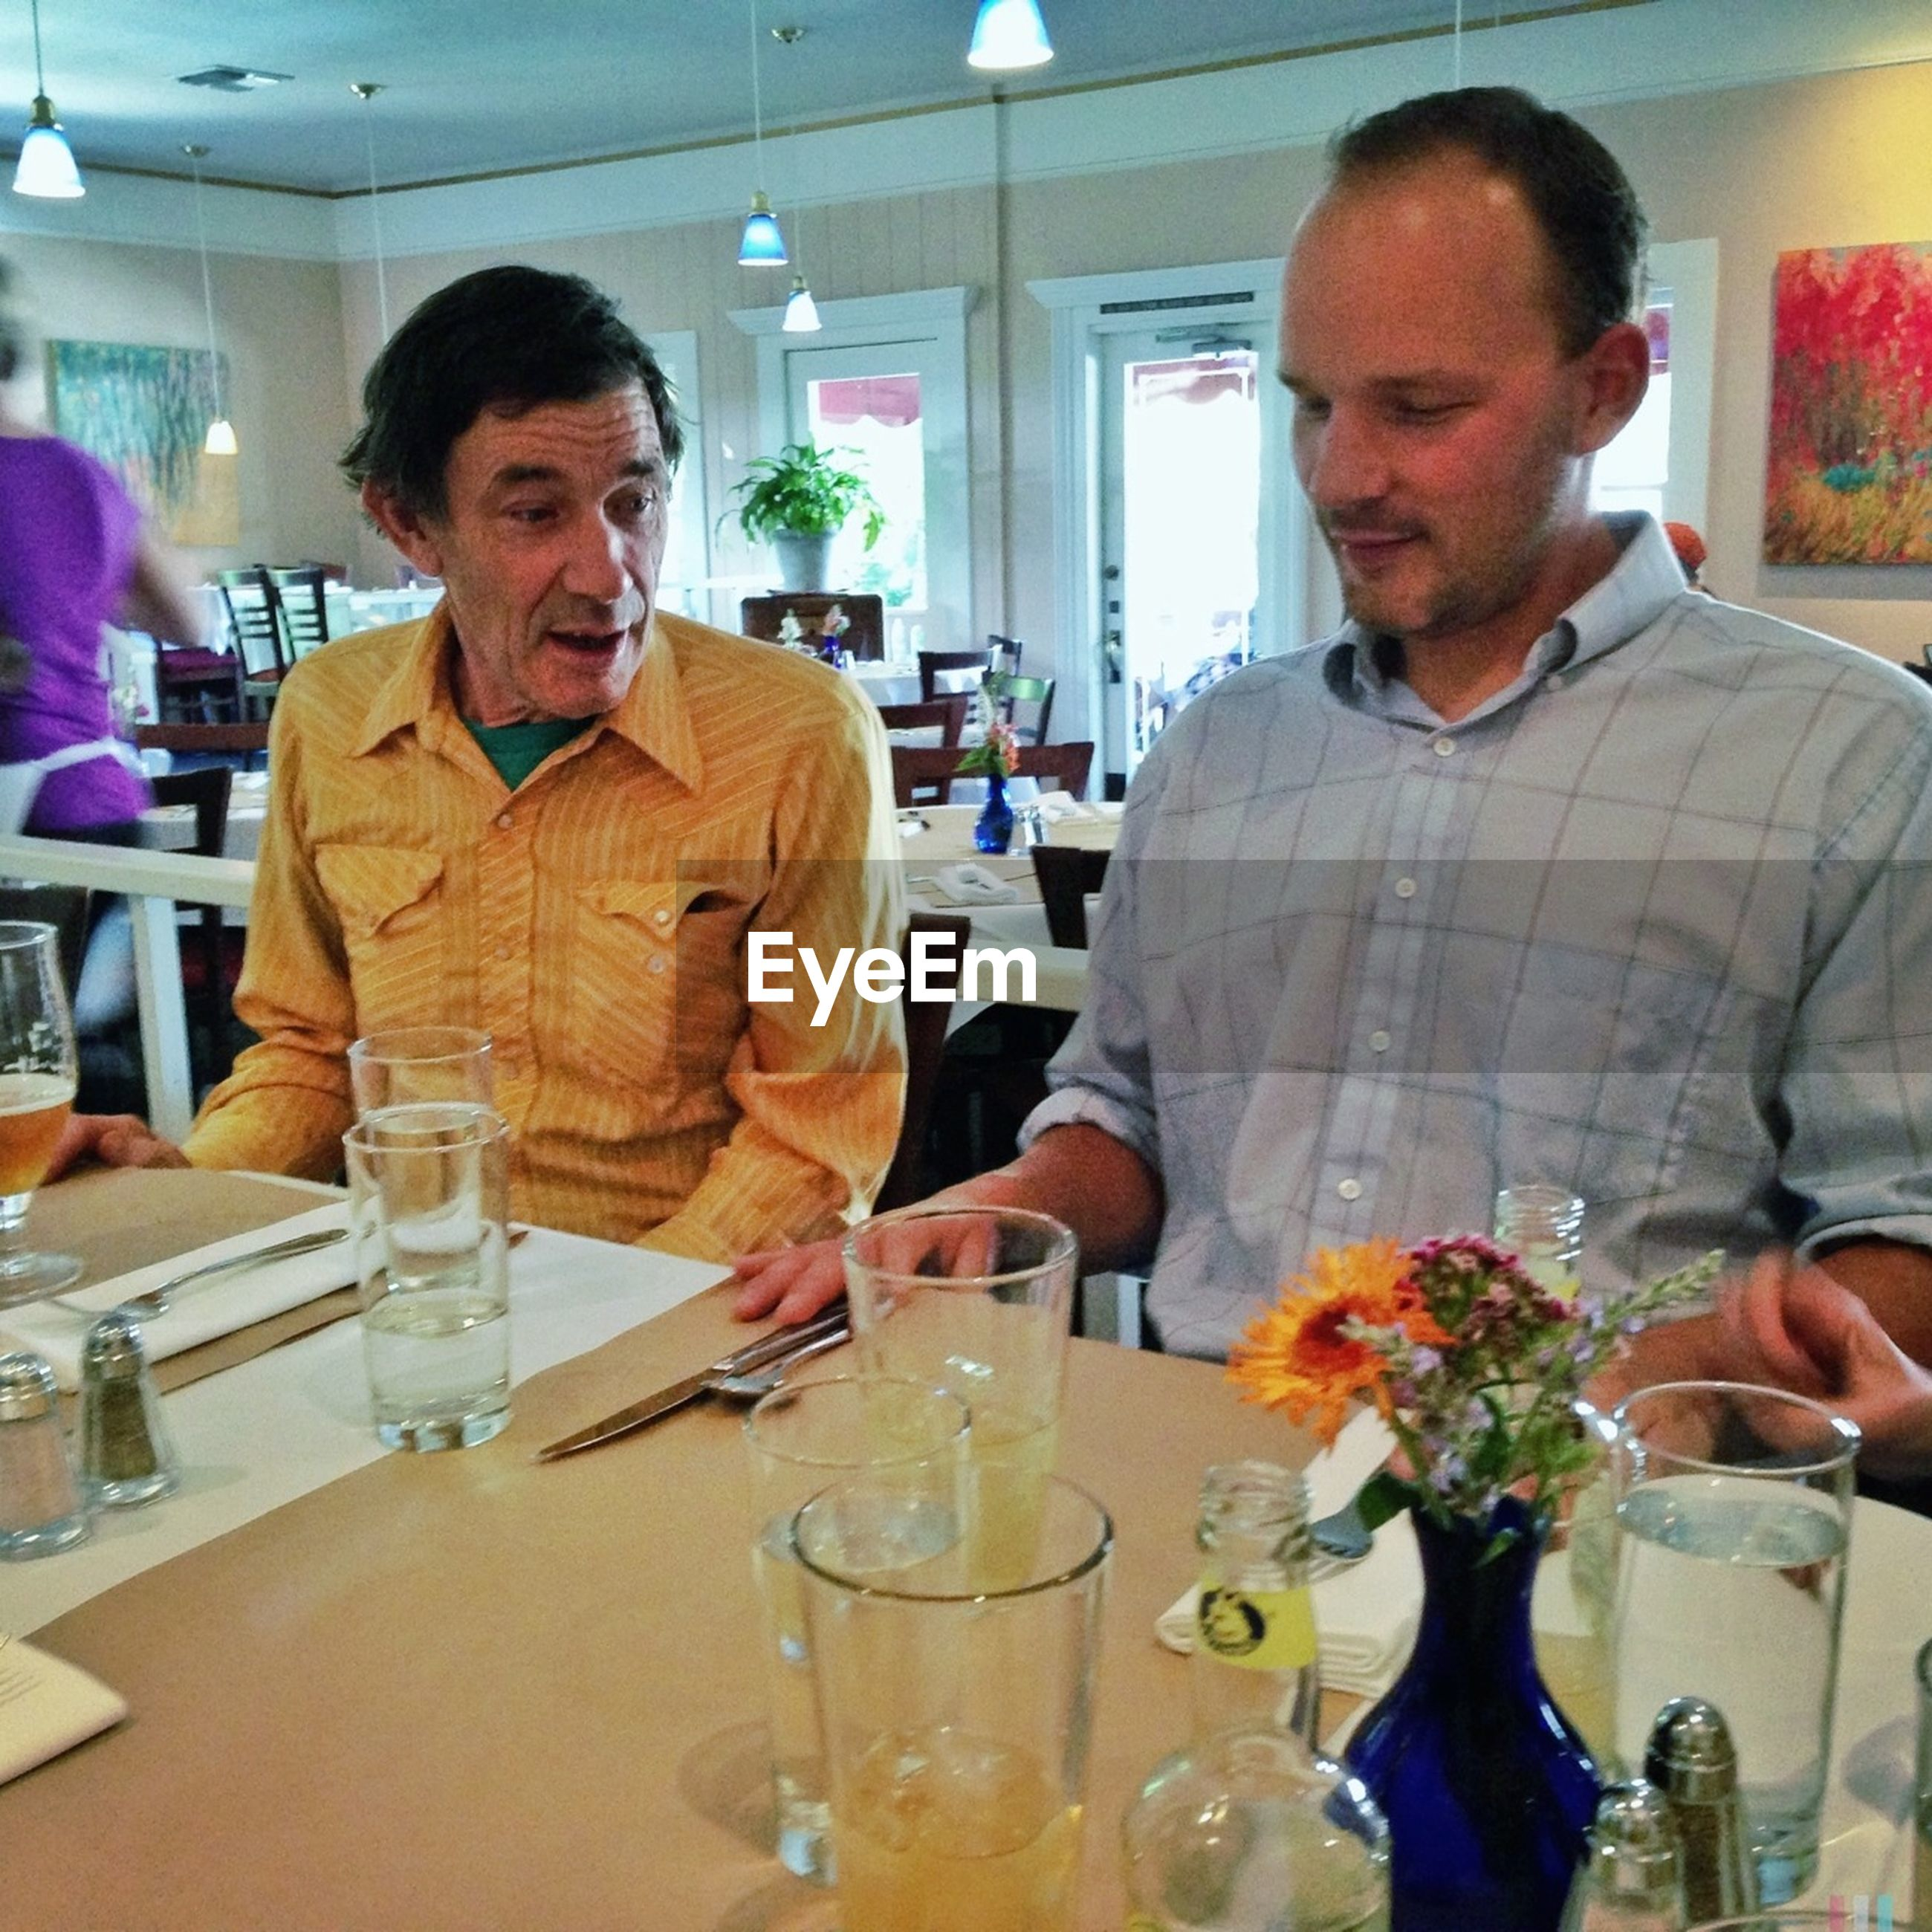 indoors, food and drink, lifestyles, person, young men, casual clothing, drink, young adult, leisure activity, restaurant, front view, holding, sitting, table, refreshment, drinking glass, incidental people